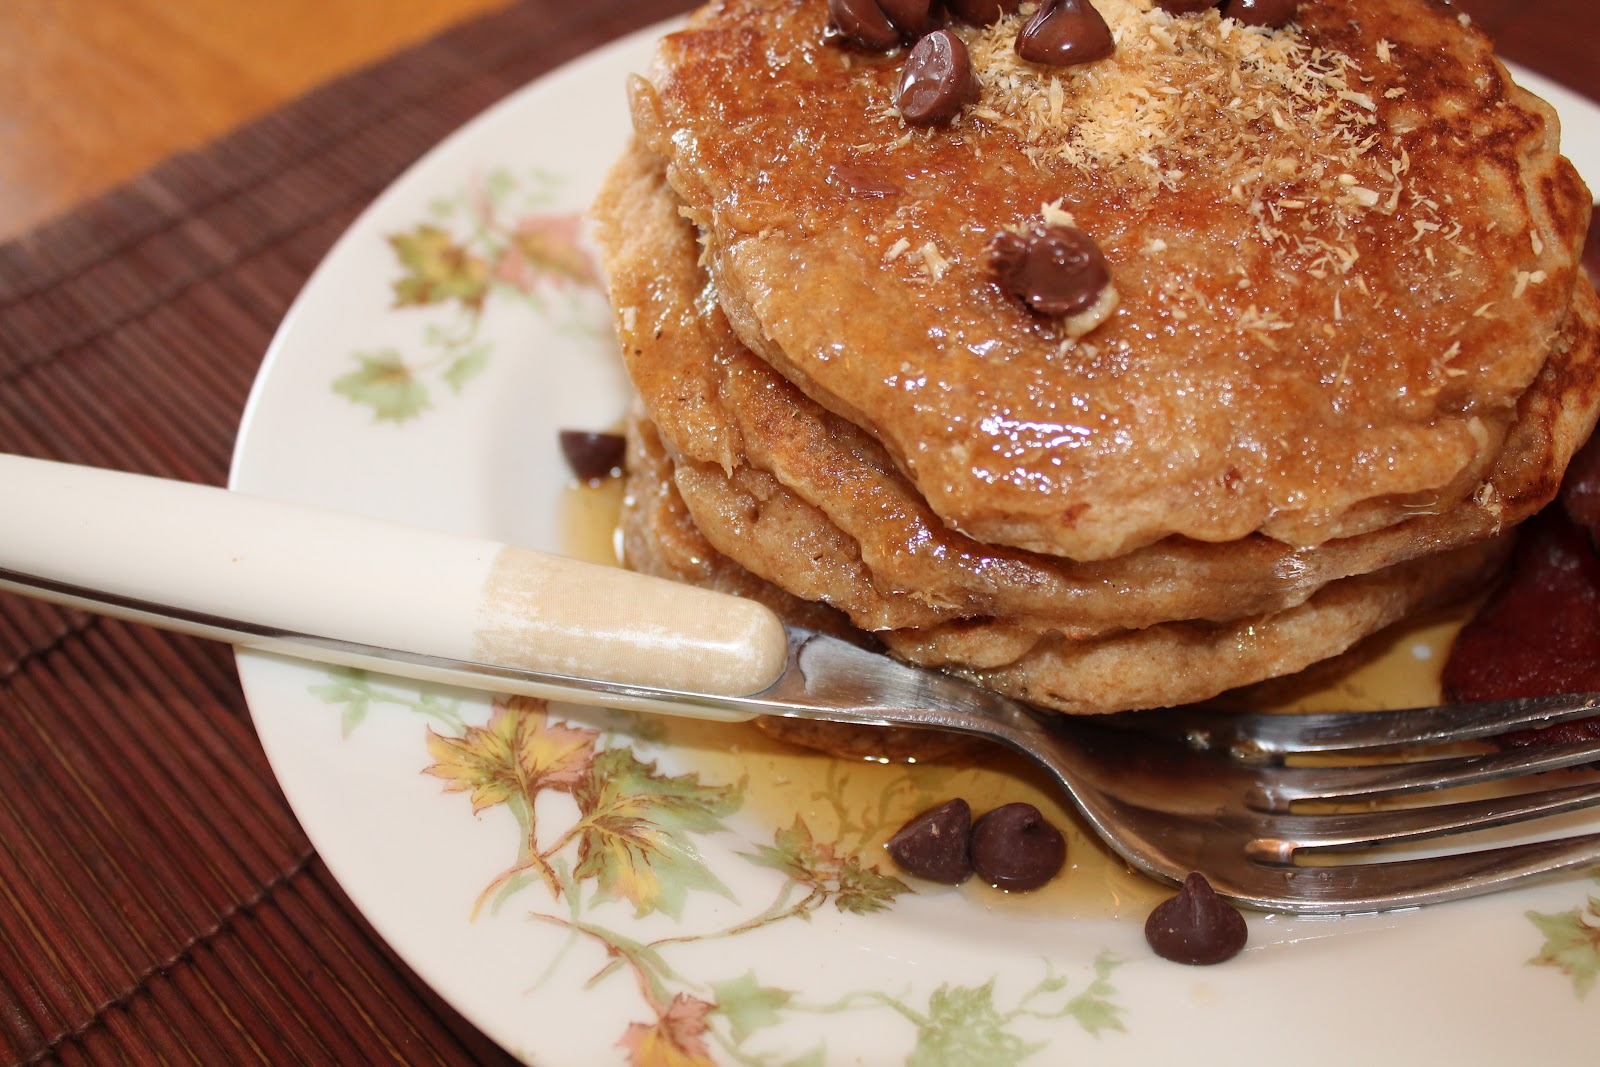 Savory Moments: Coconut pancakes